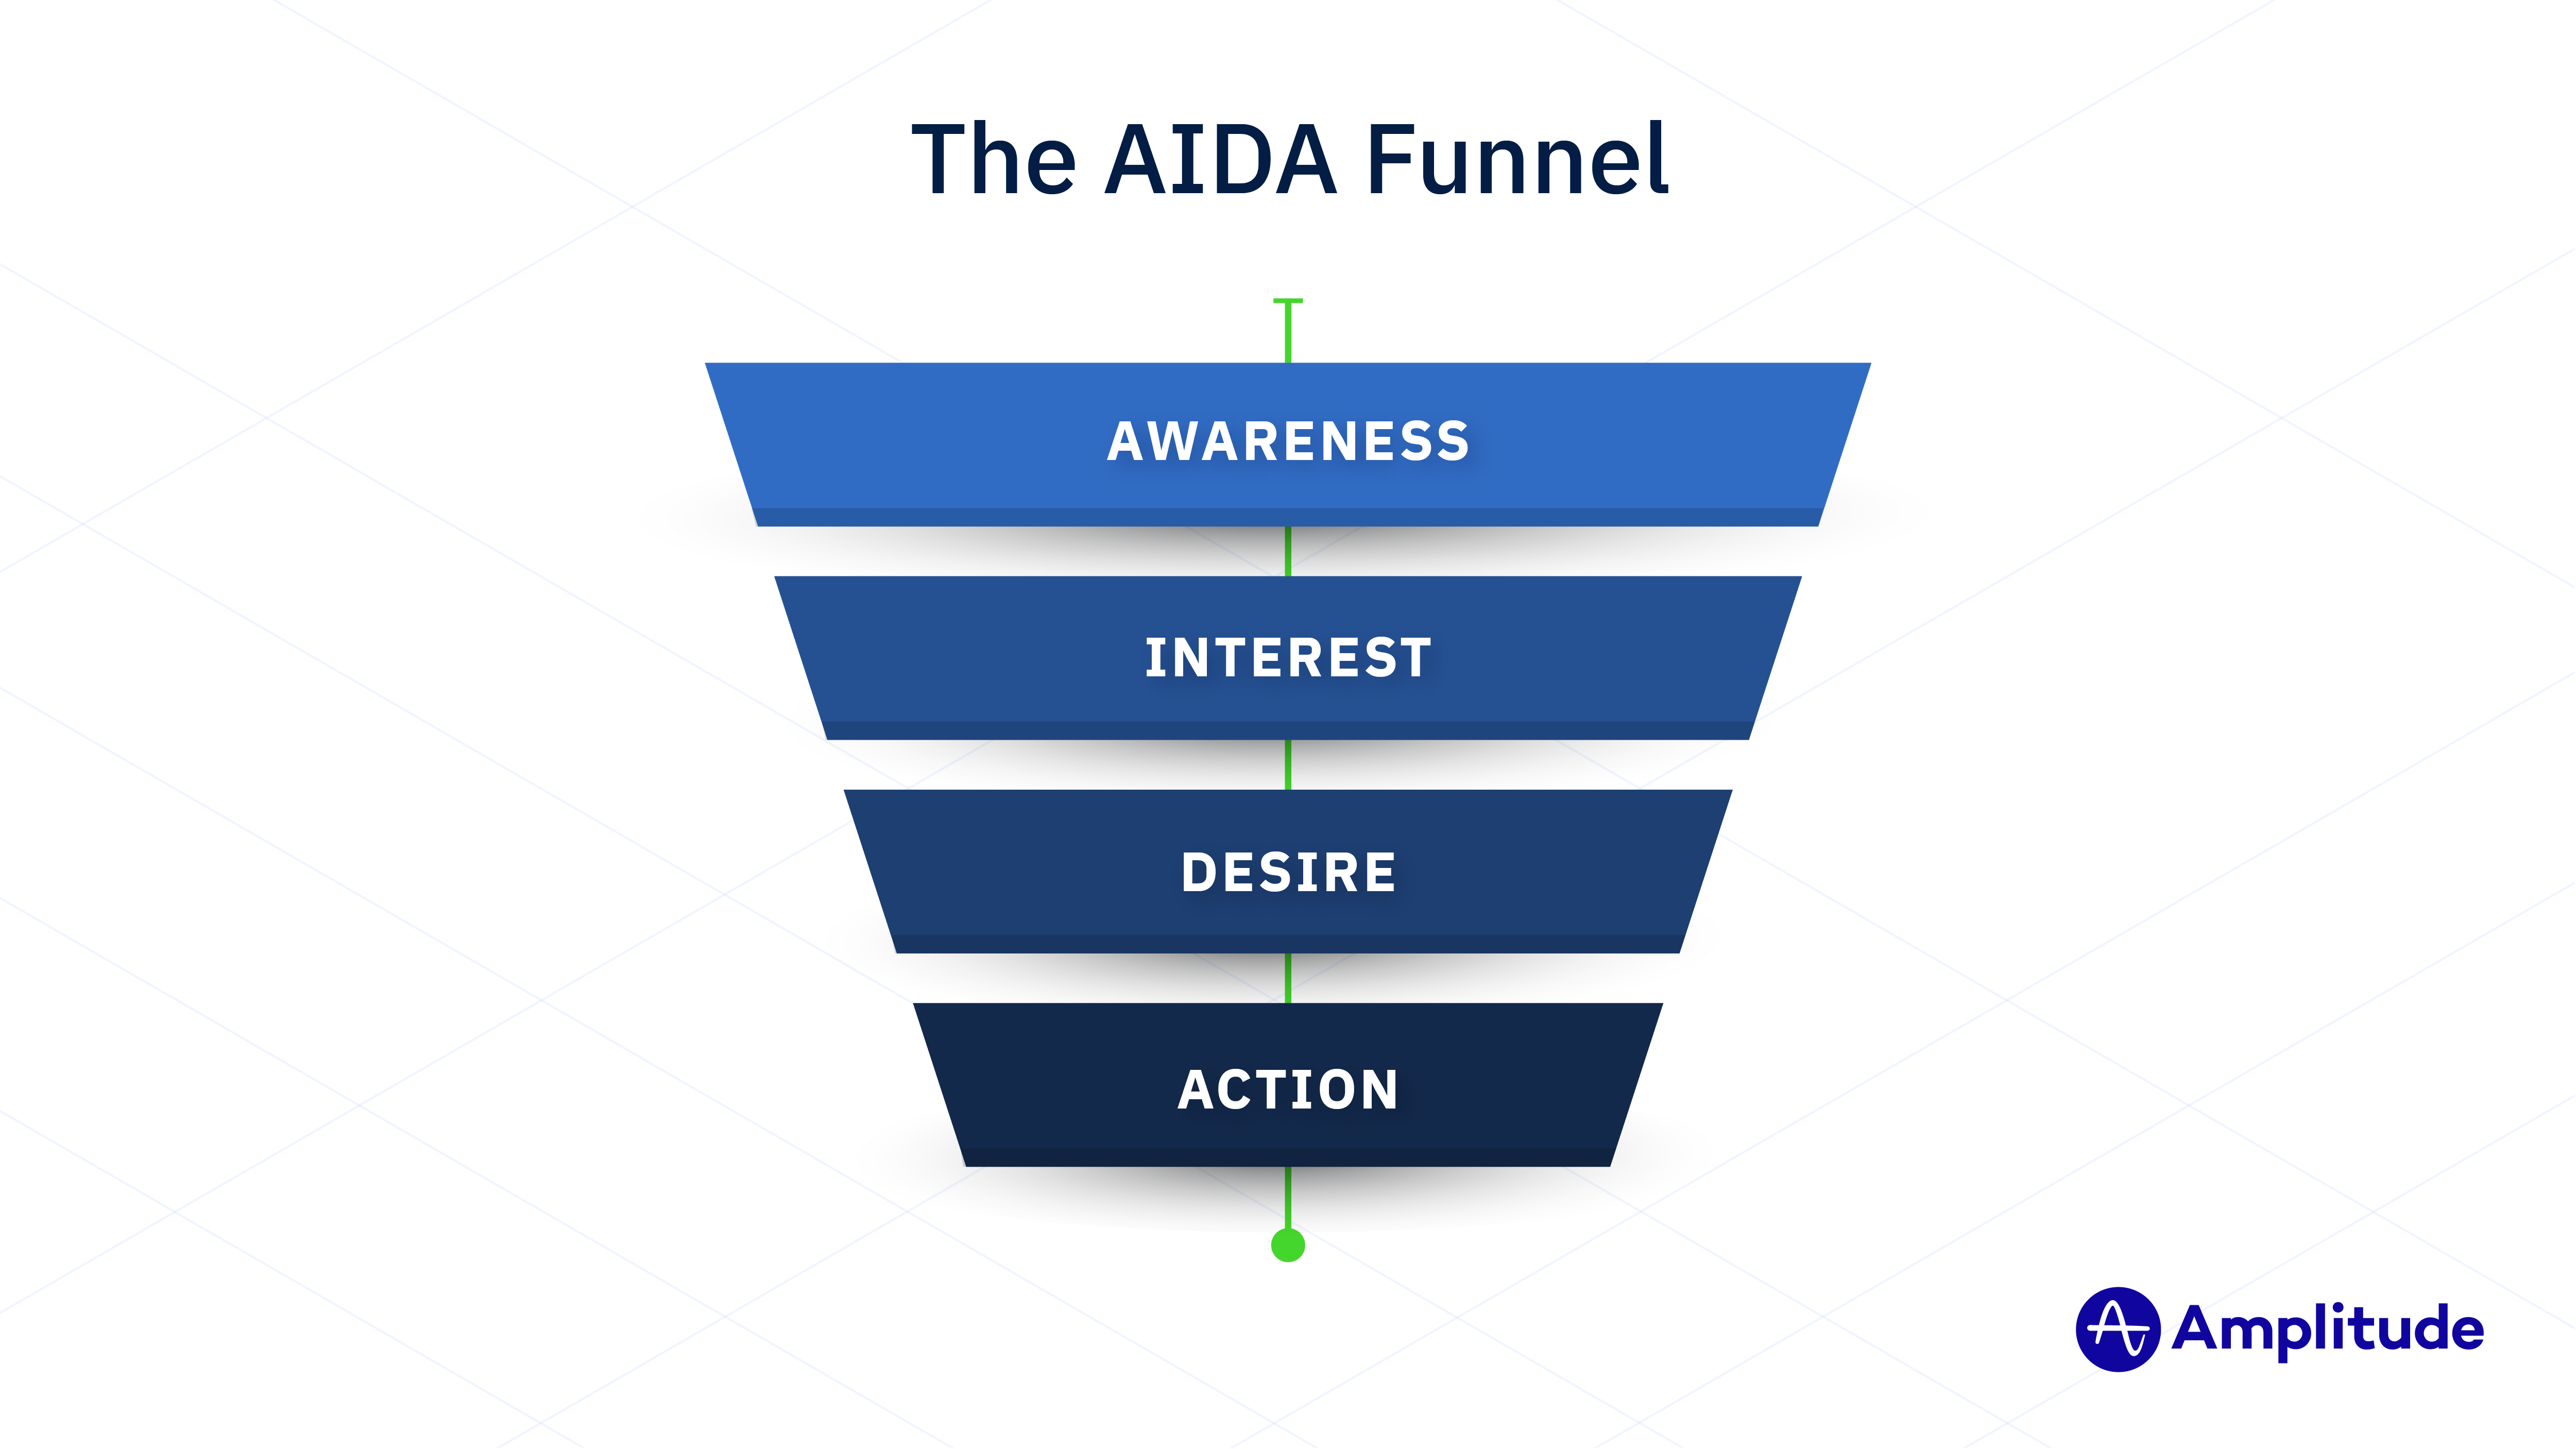 The AIDA model has four steps: awareness, interest, desire, and action